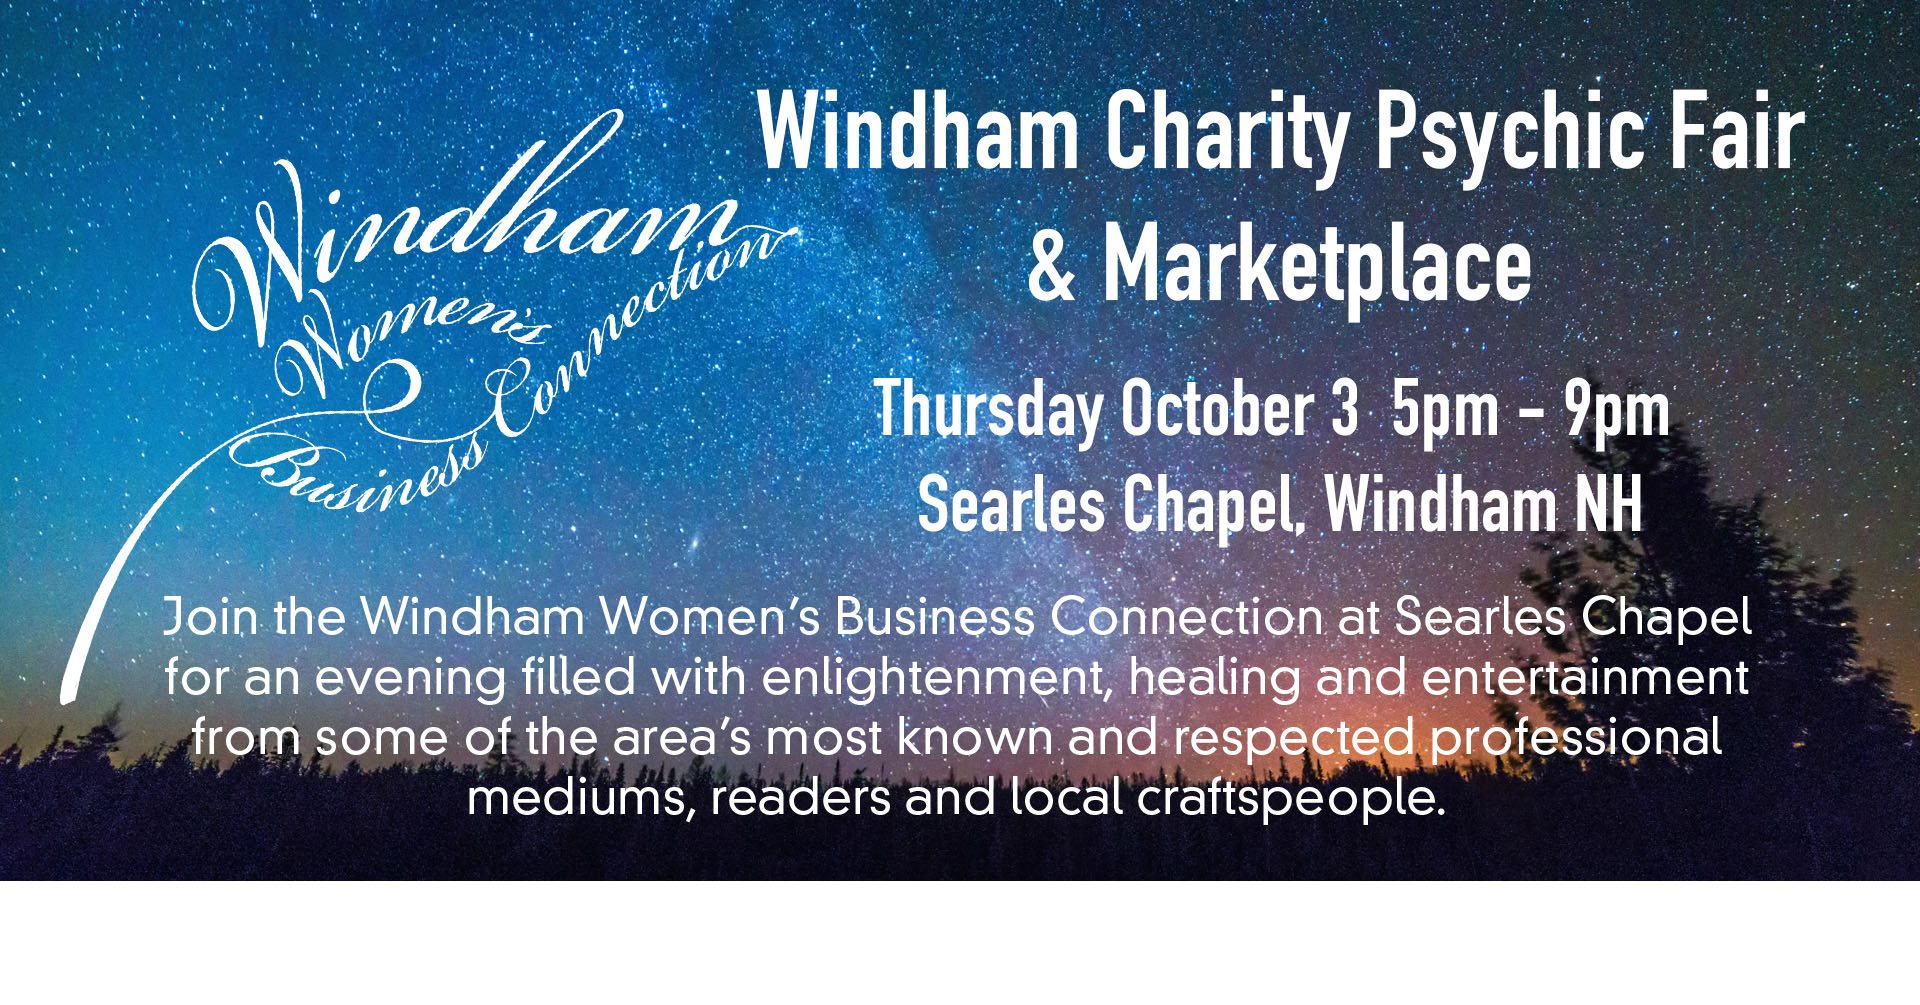 RSVP for the Psychic Fair & Marketplace event on  Facebook